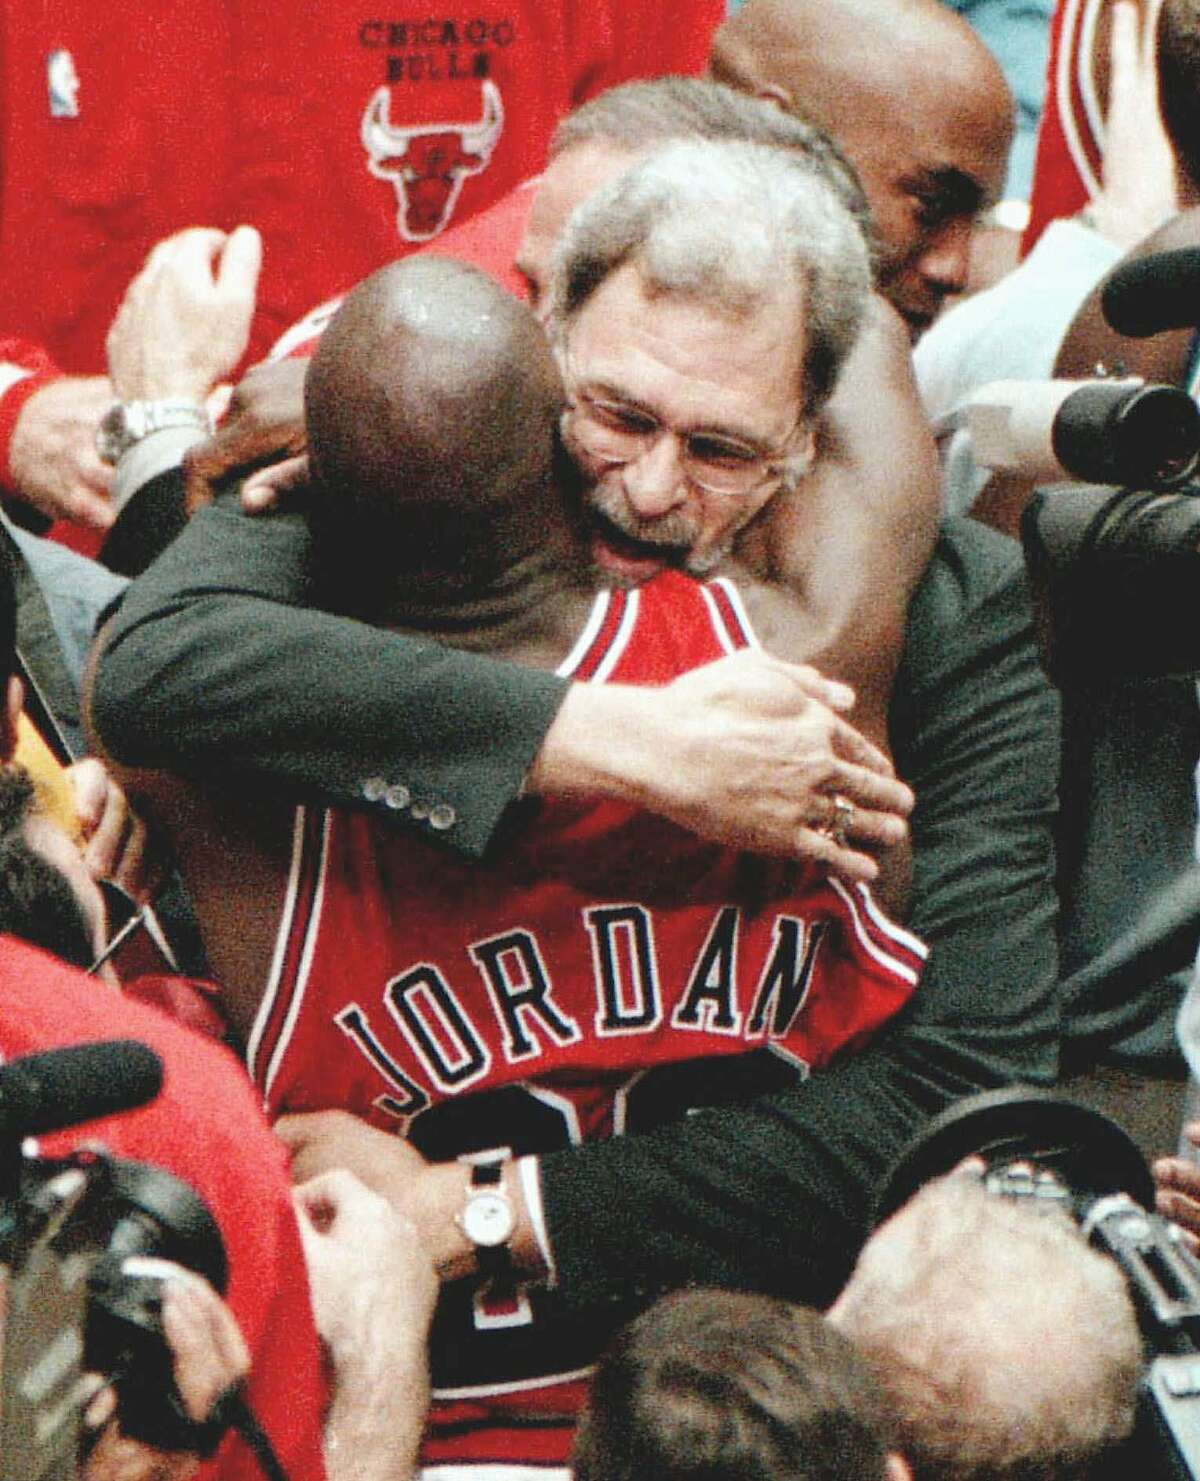 Chicago Bulls coach Phil Jackson and Michael Jordan embrace after the Bulls won their 6th NBA championship with an 87-86 win over the Utah Jazz in Game 6 on Sunday, June 14, 1998, at the Delta Center in Salt Lake City. (AP Photo/Chicago Tribune, Nuccio DiNuzzio) HOUCHRON CAPTION (06/16/1998): Michael Jordan would love to see Phil Jackson return, but don't count on it.